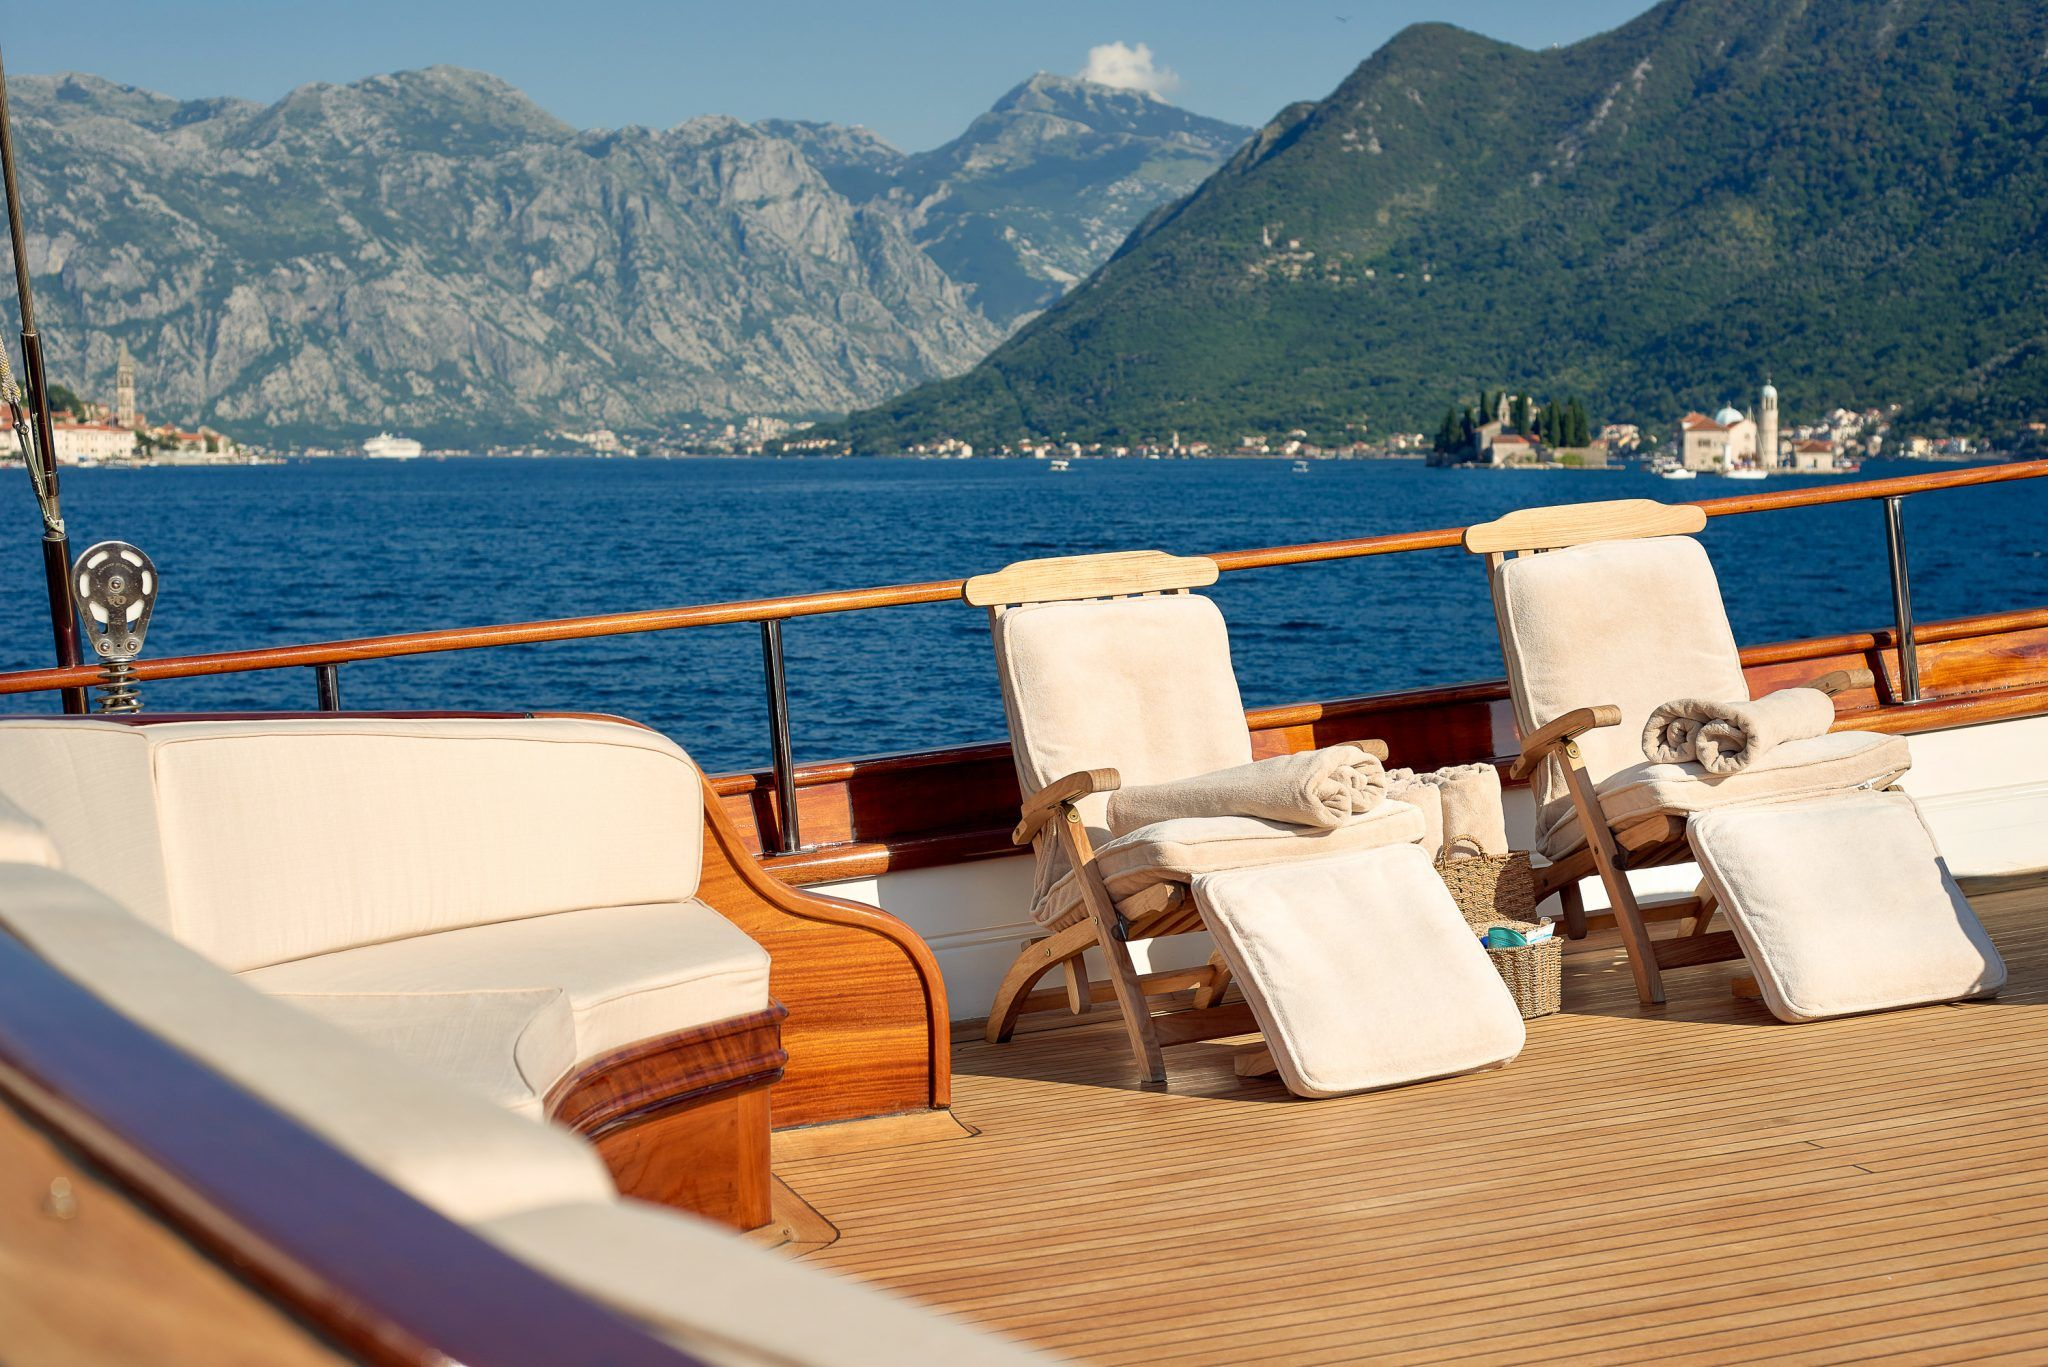 S/Y RIANA Yacht for Charter deck chairs